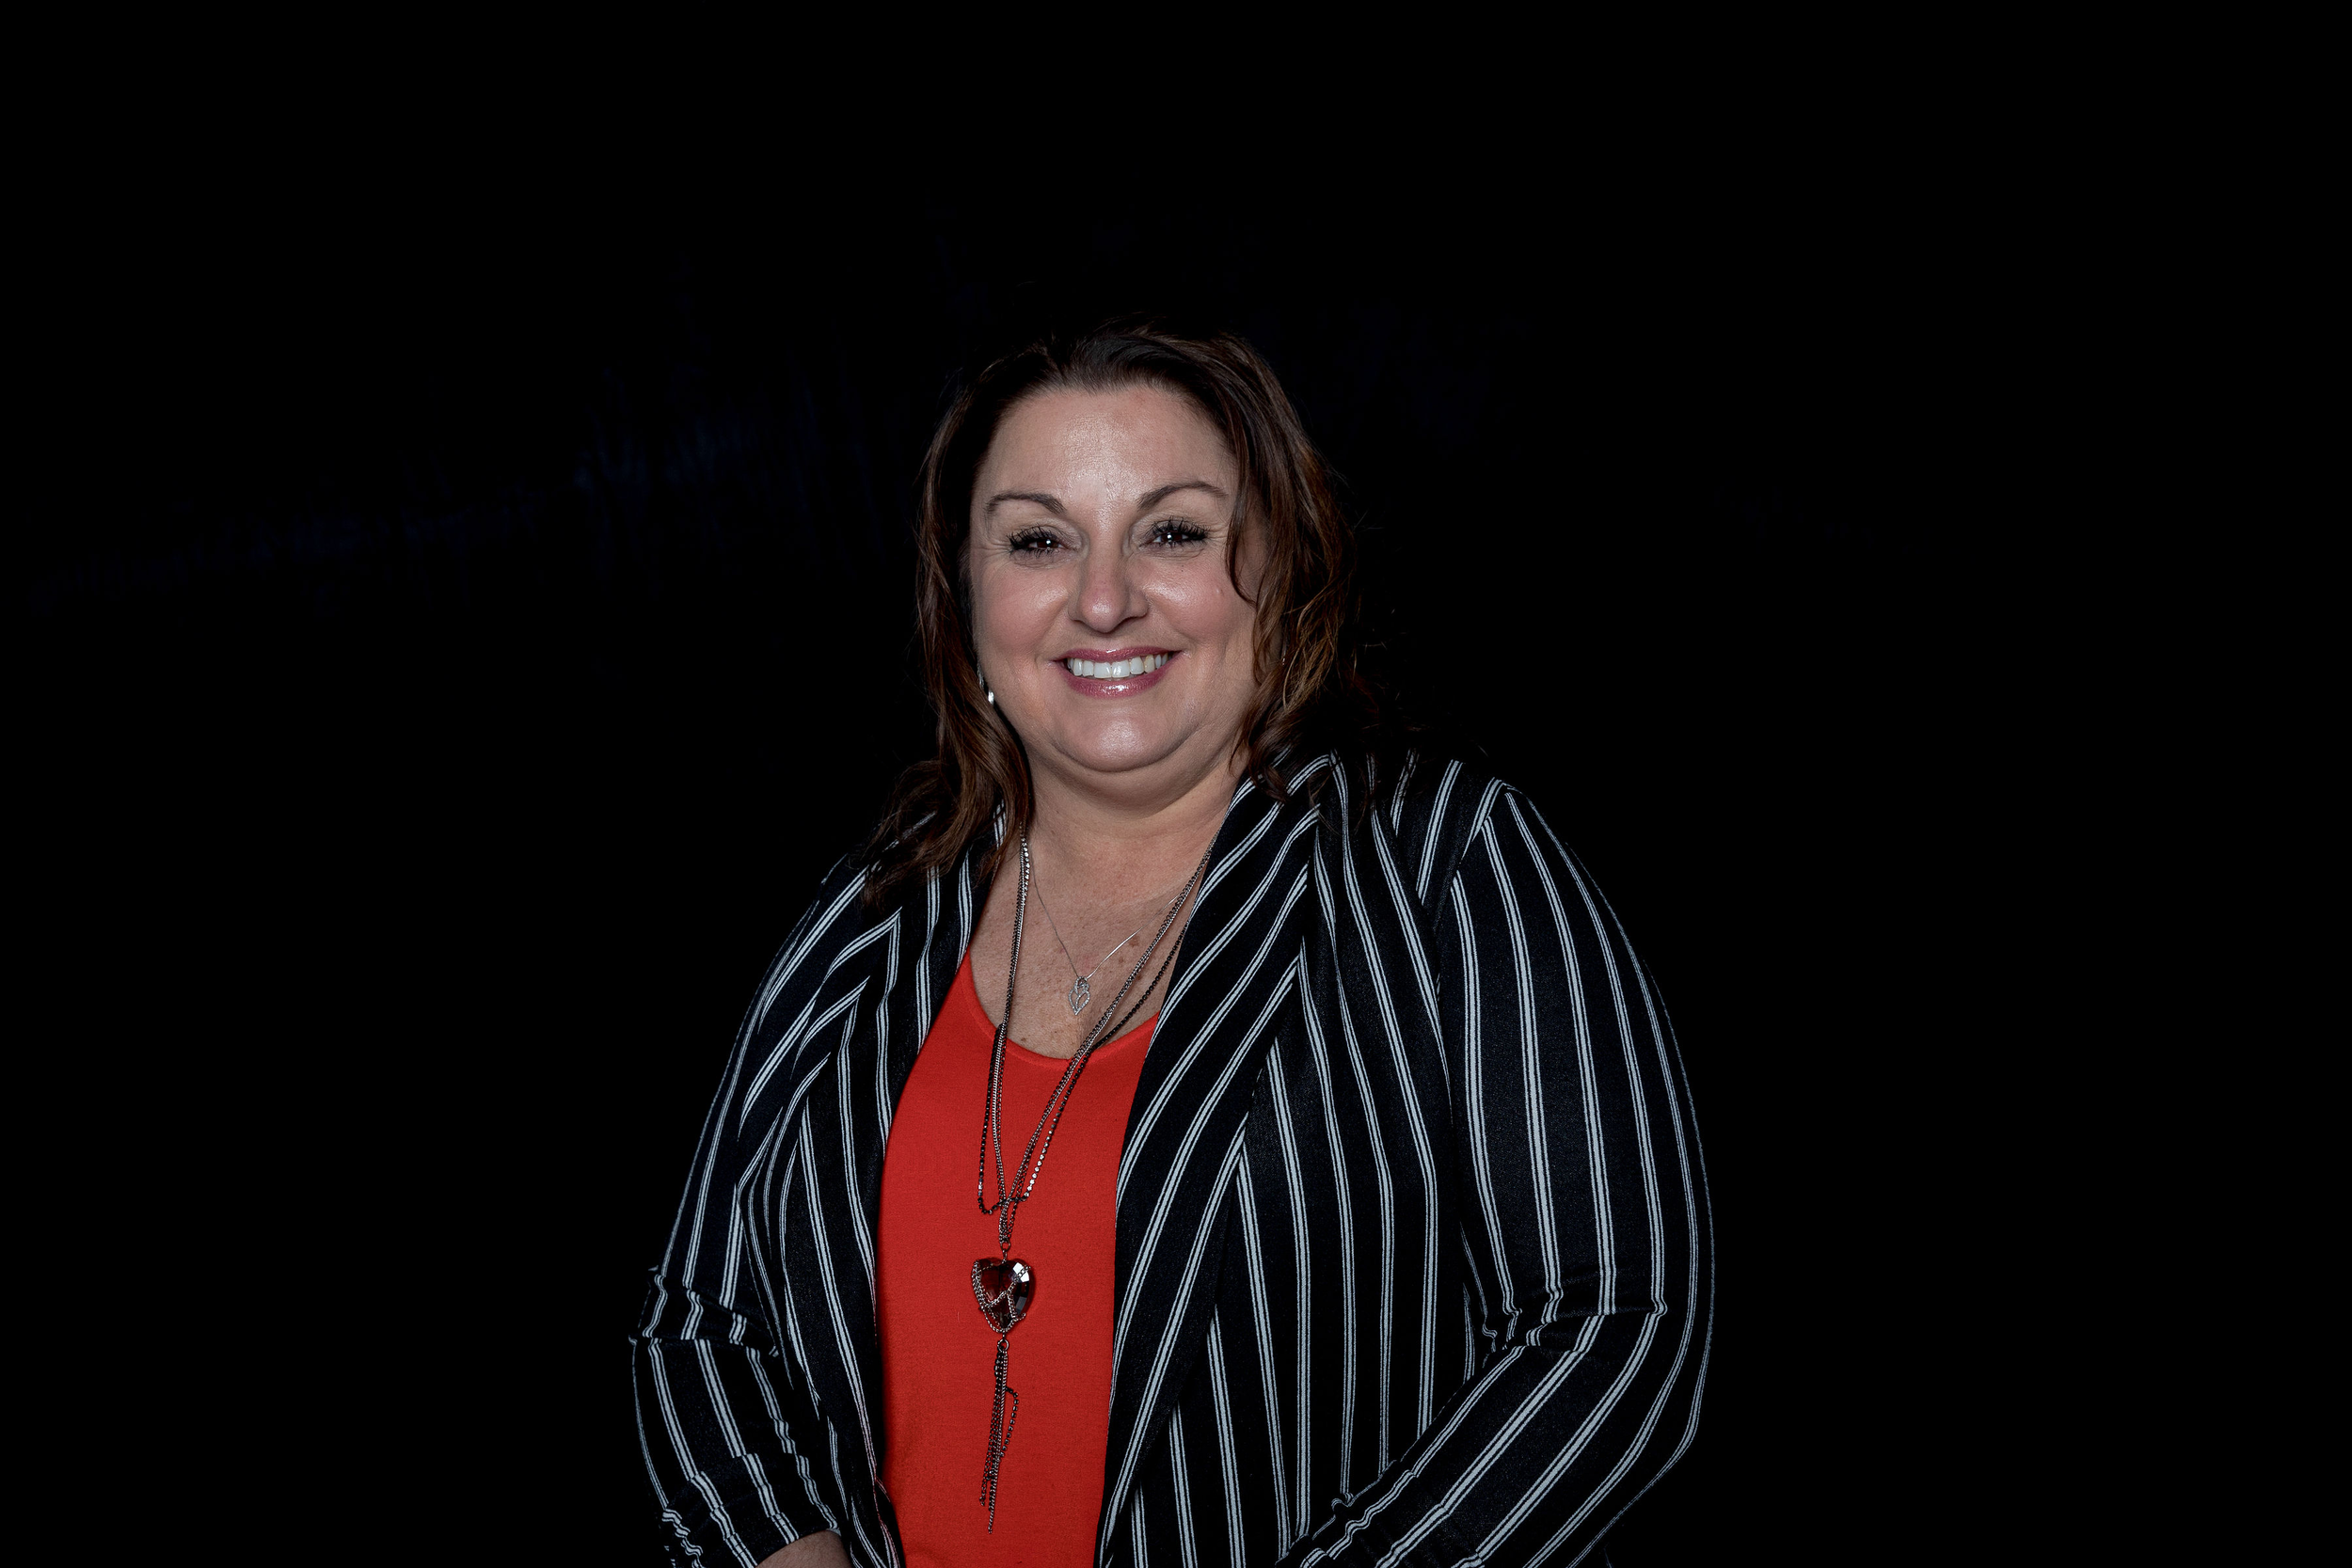 Stacy Gaudioso - Production Services Manager